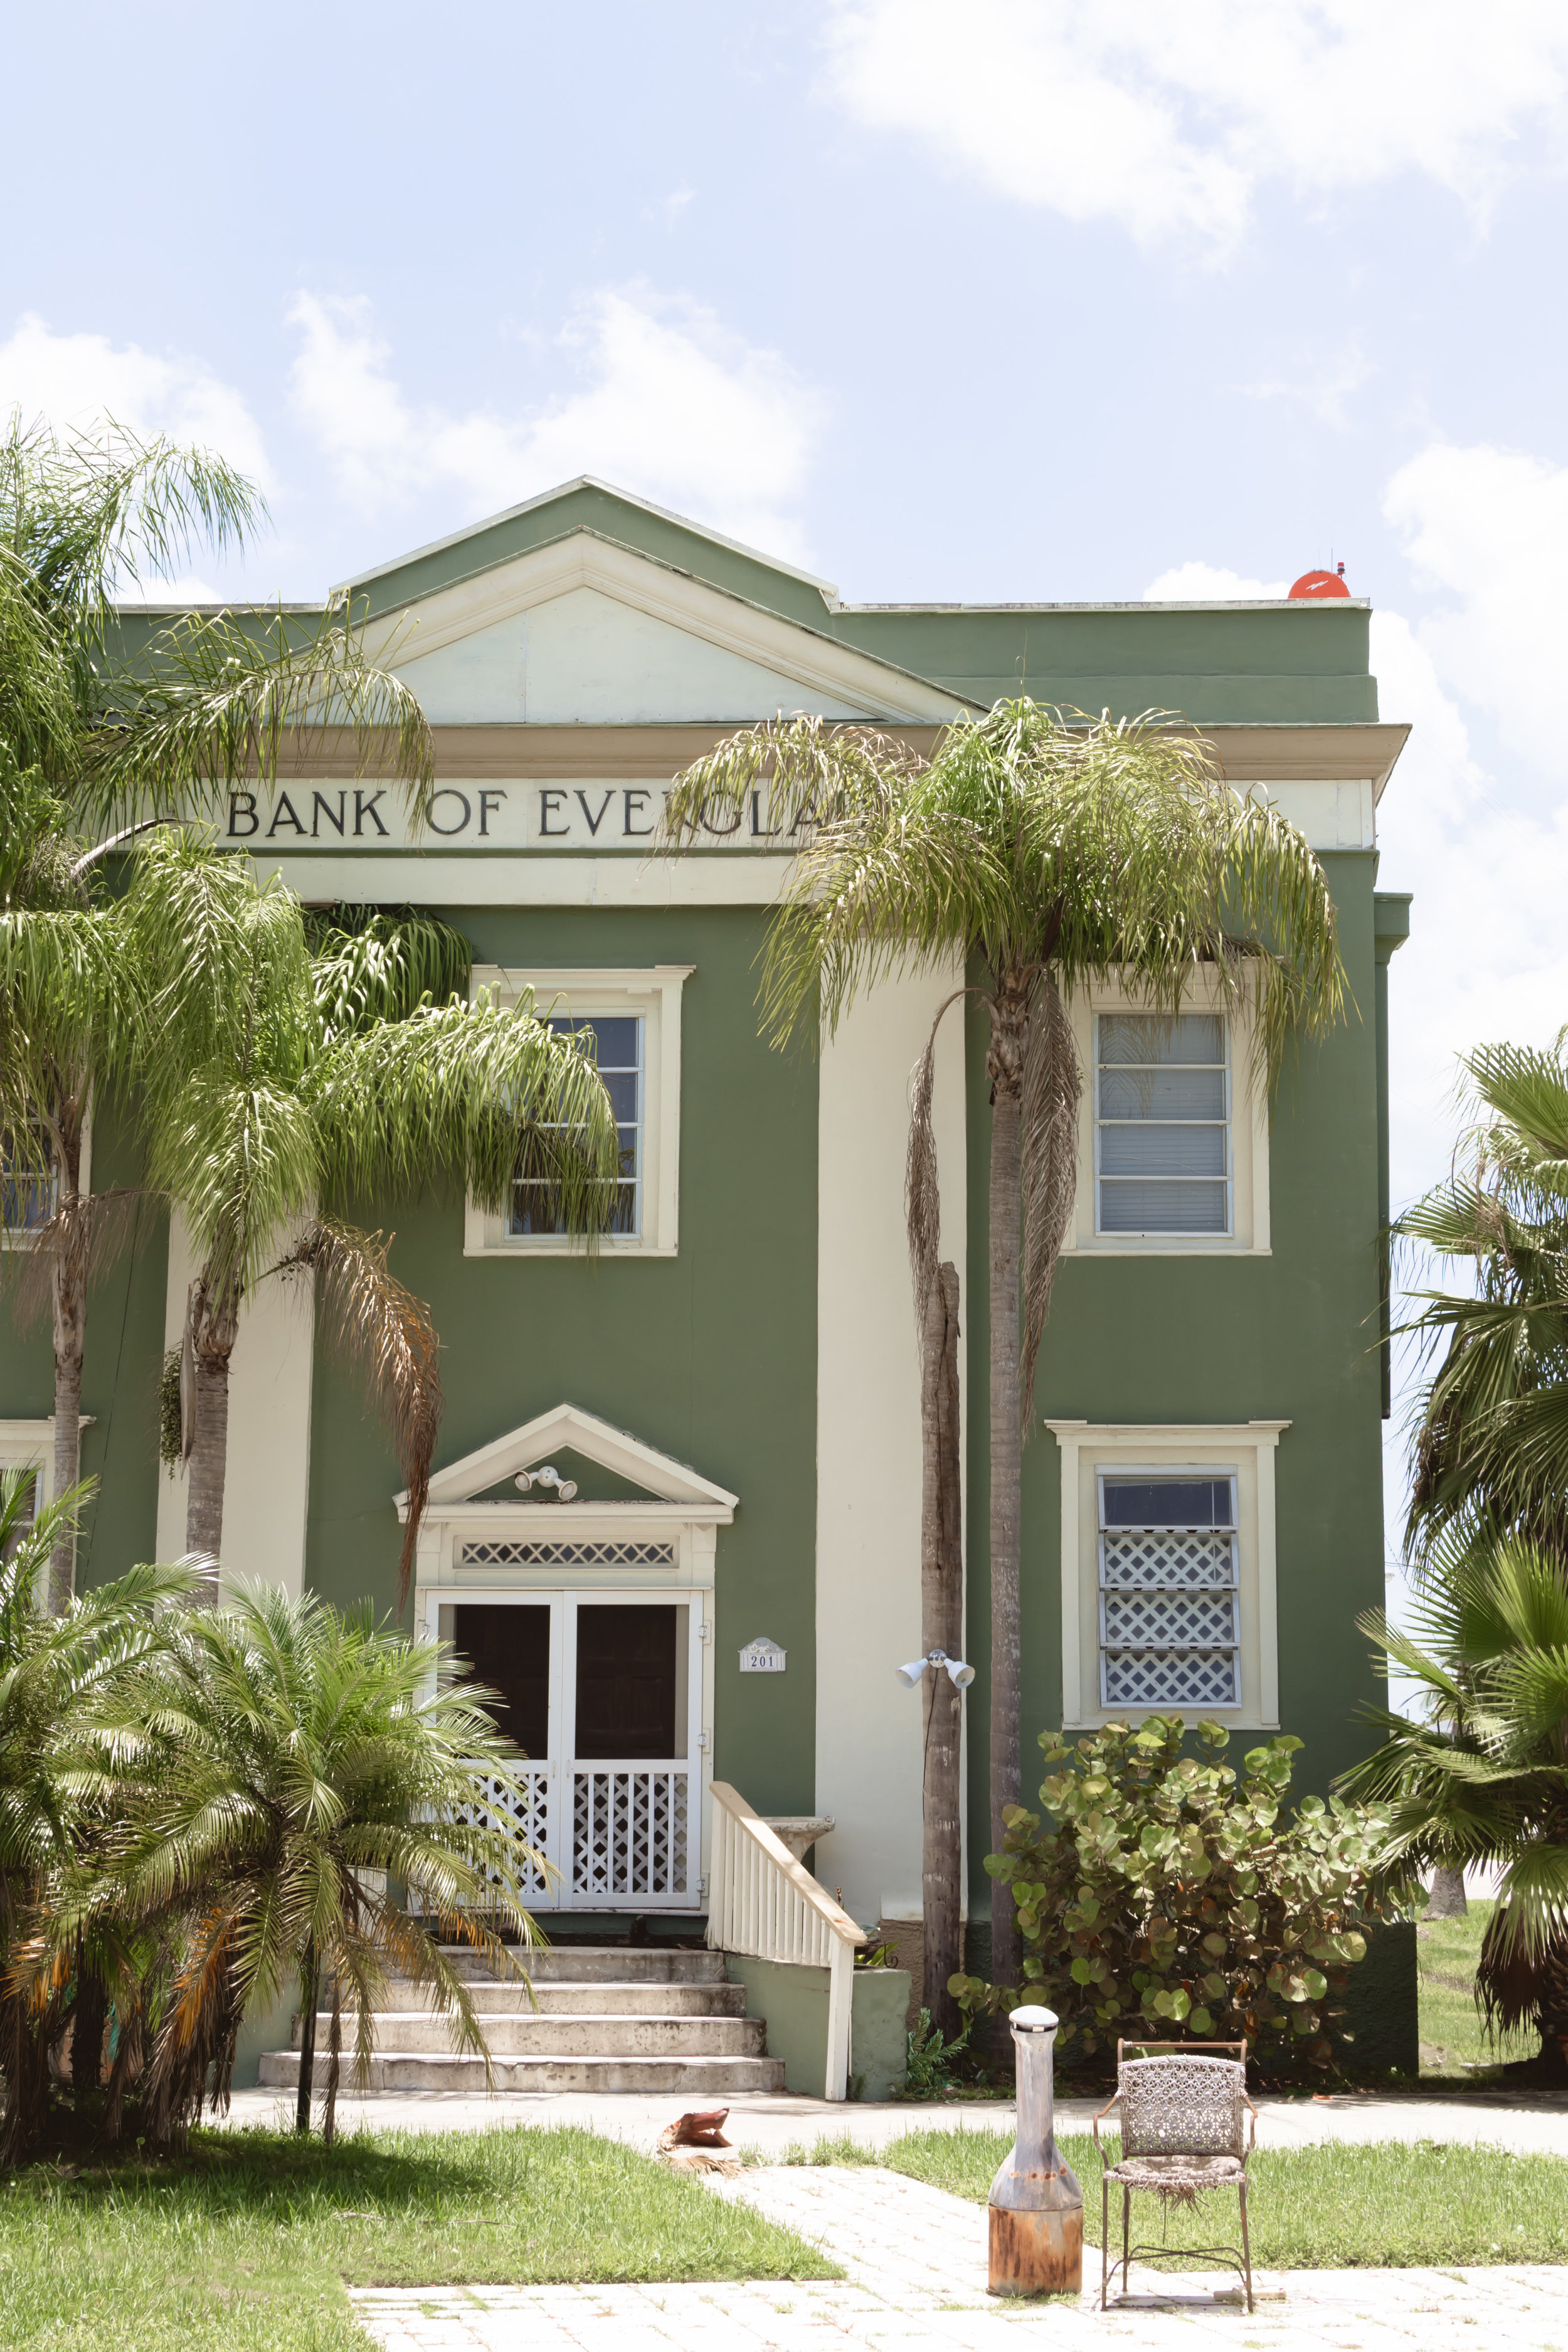 Bank of Everglades building, Circa 1926, was added to the National Register of Historic Places in 1999.